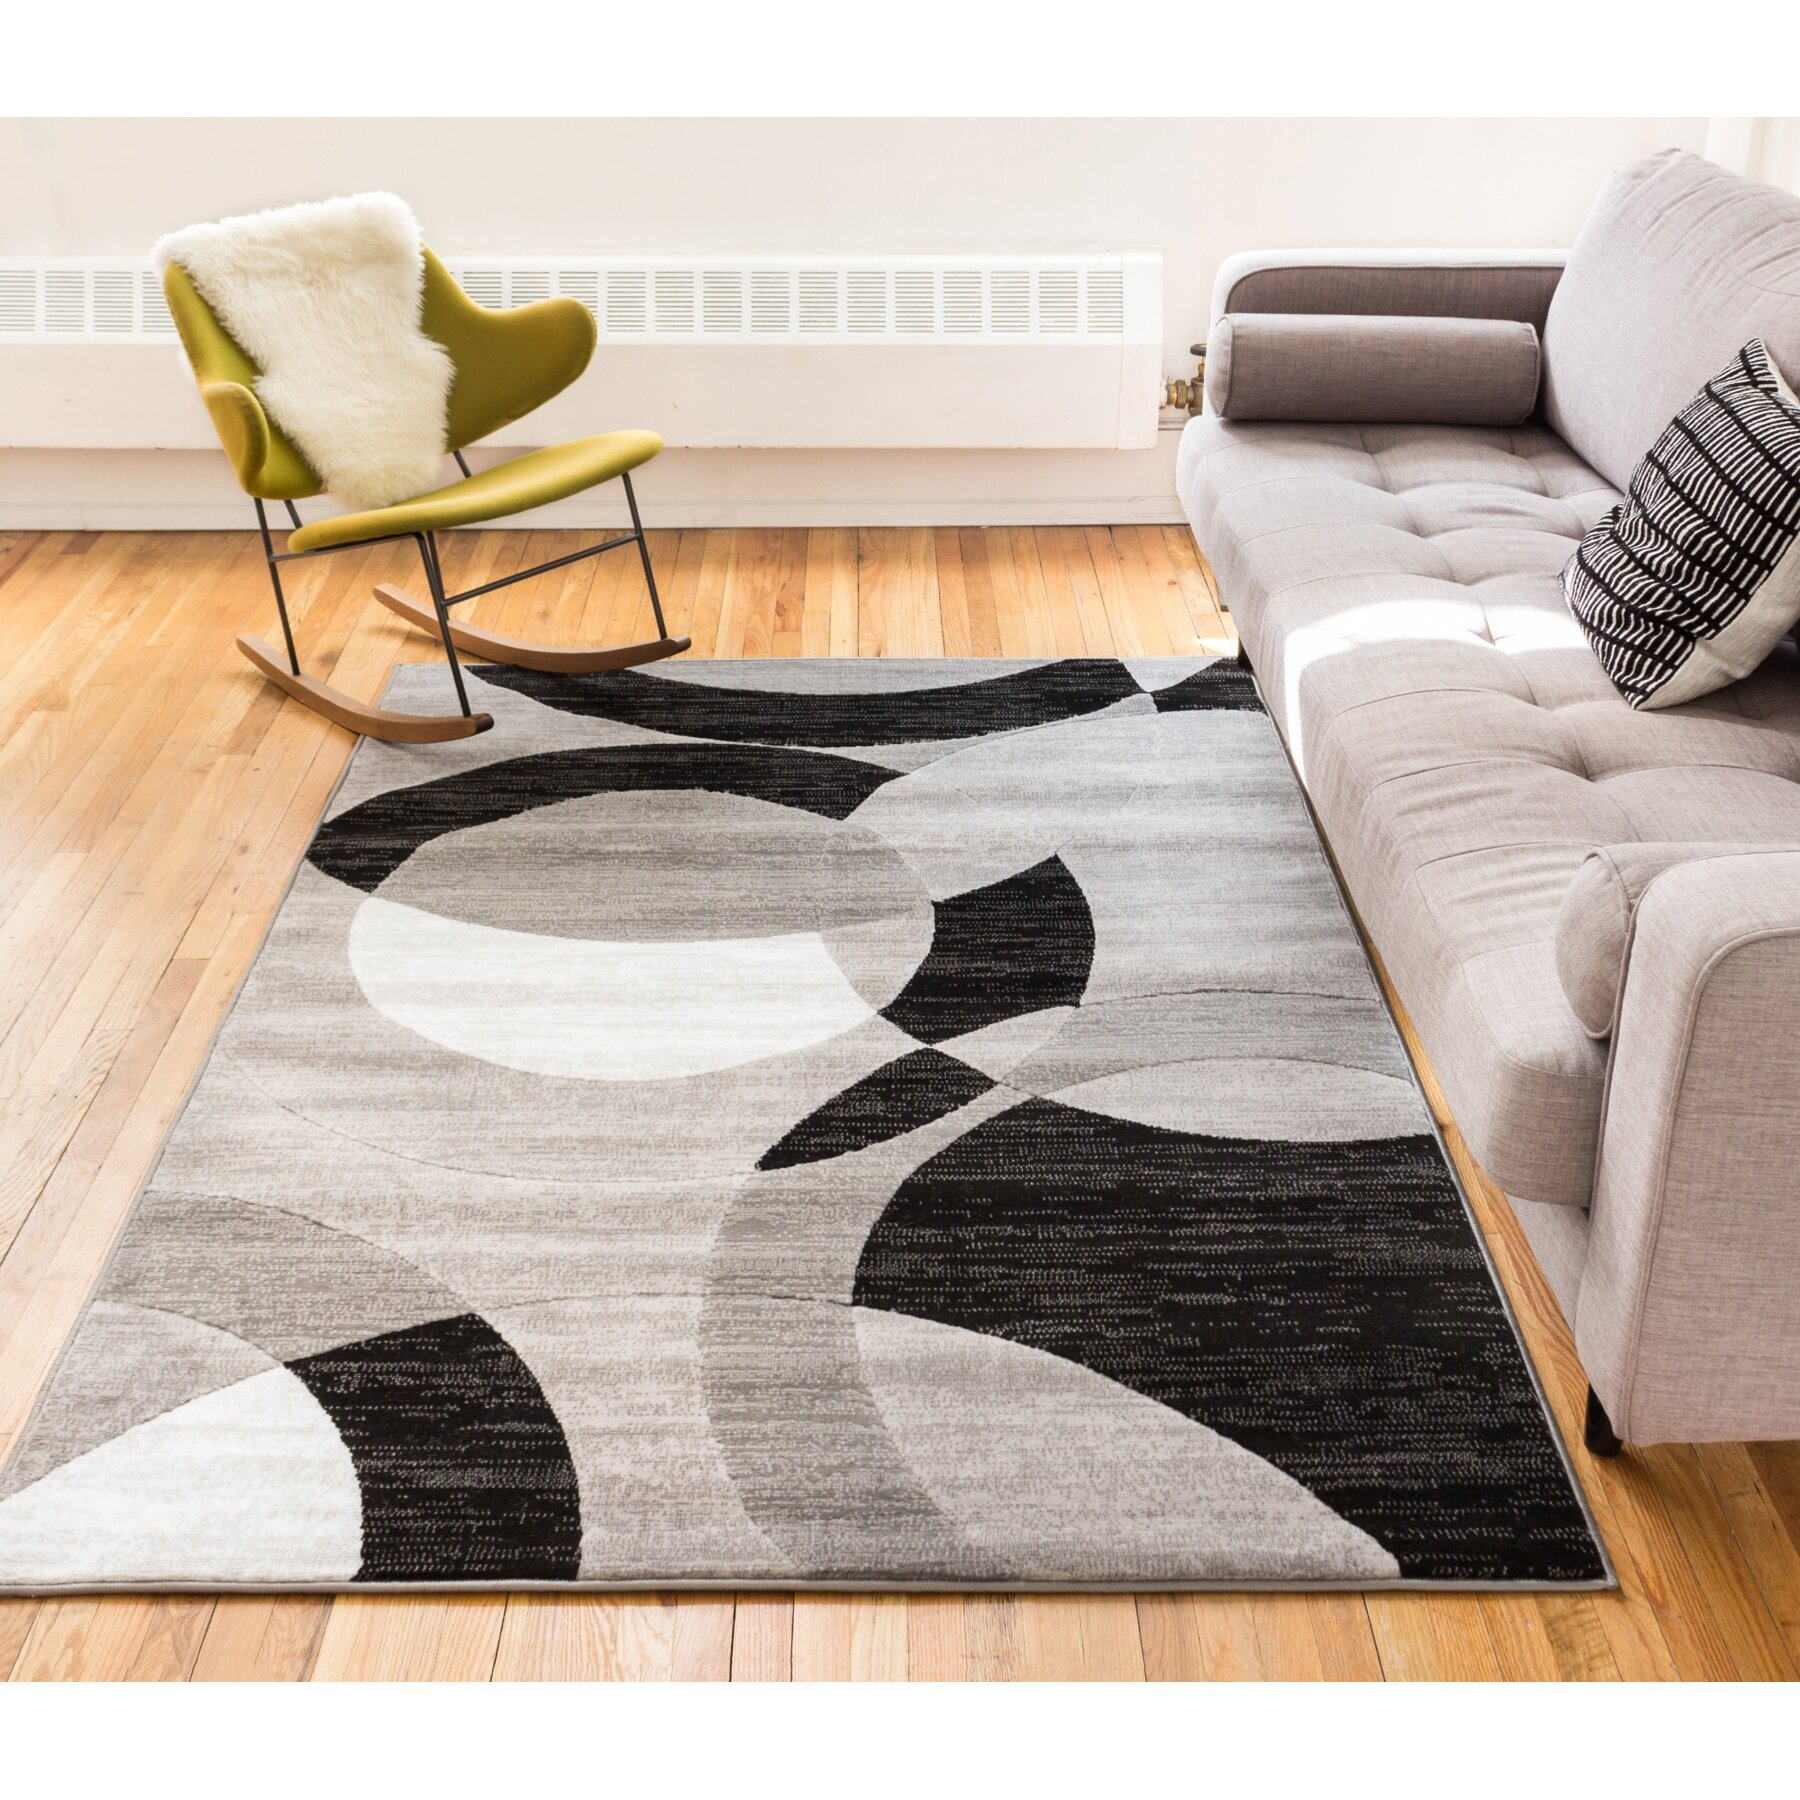 Well Woven Dulcet Gray Area Rug & Reviews